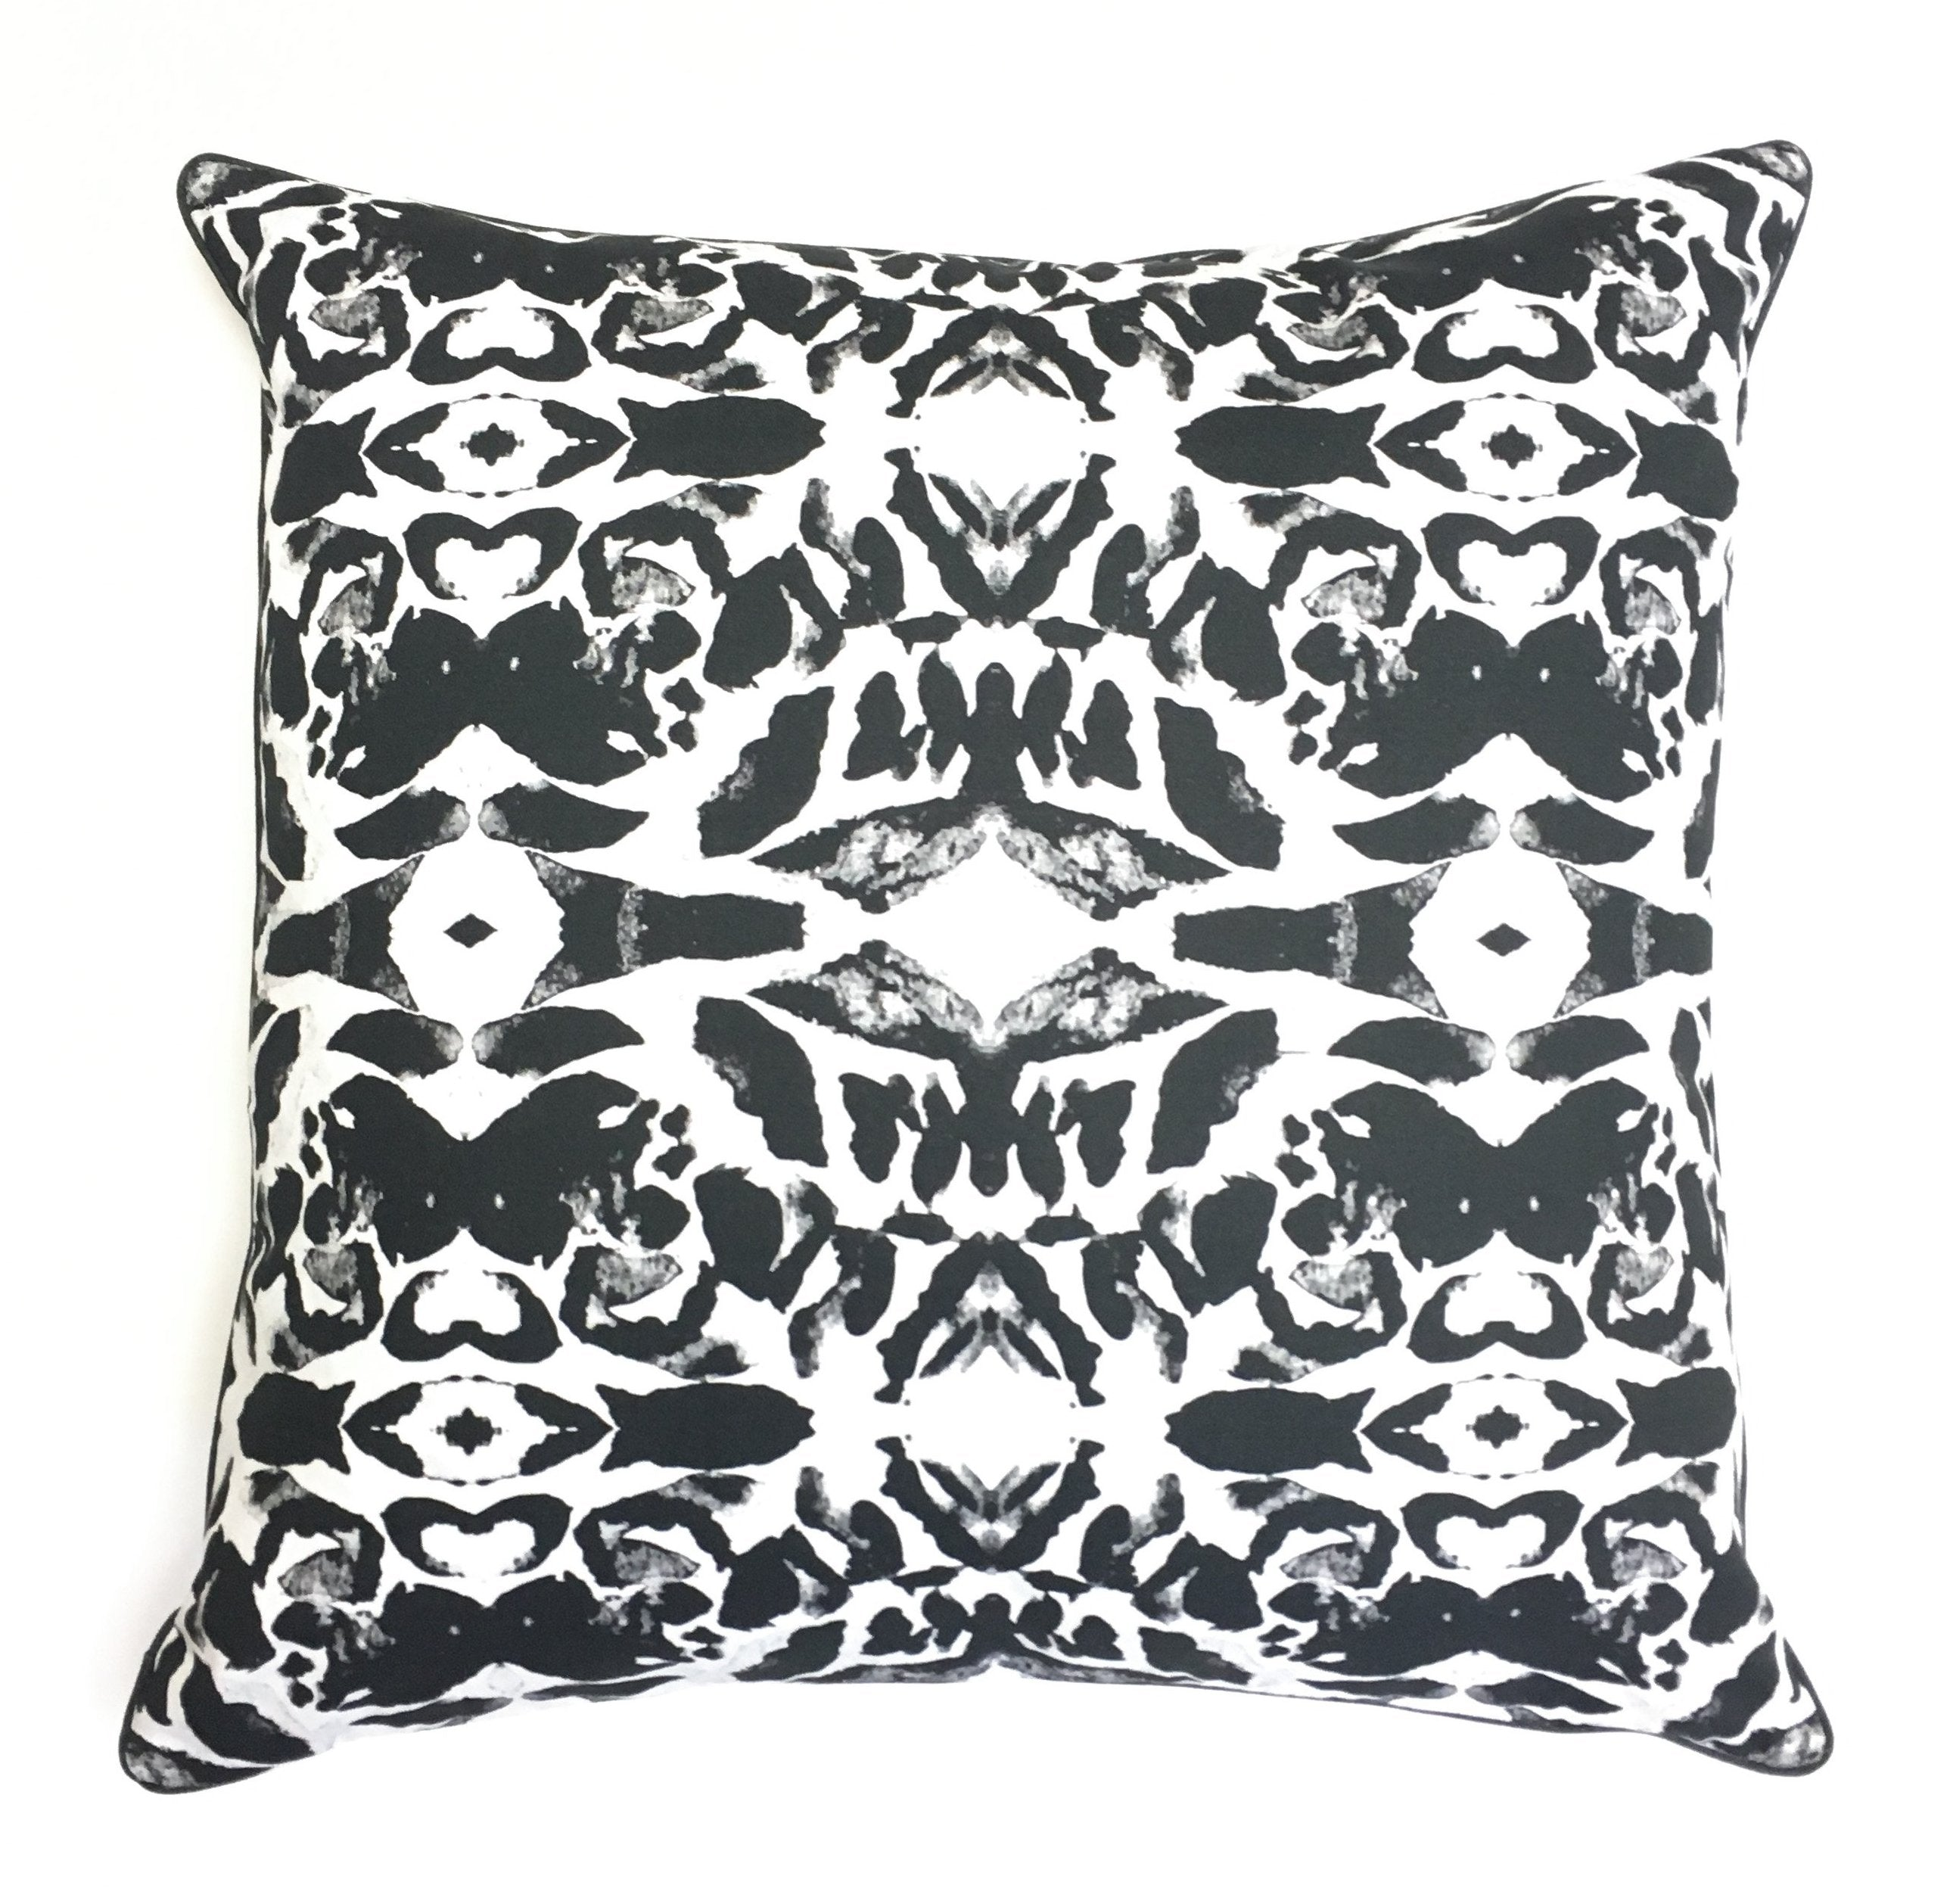 Pillow - Moroccan (Black)